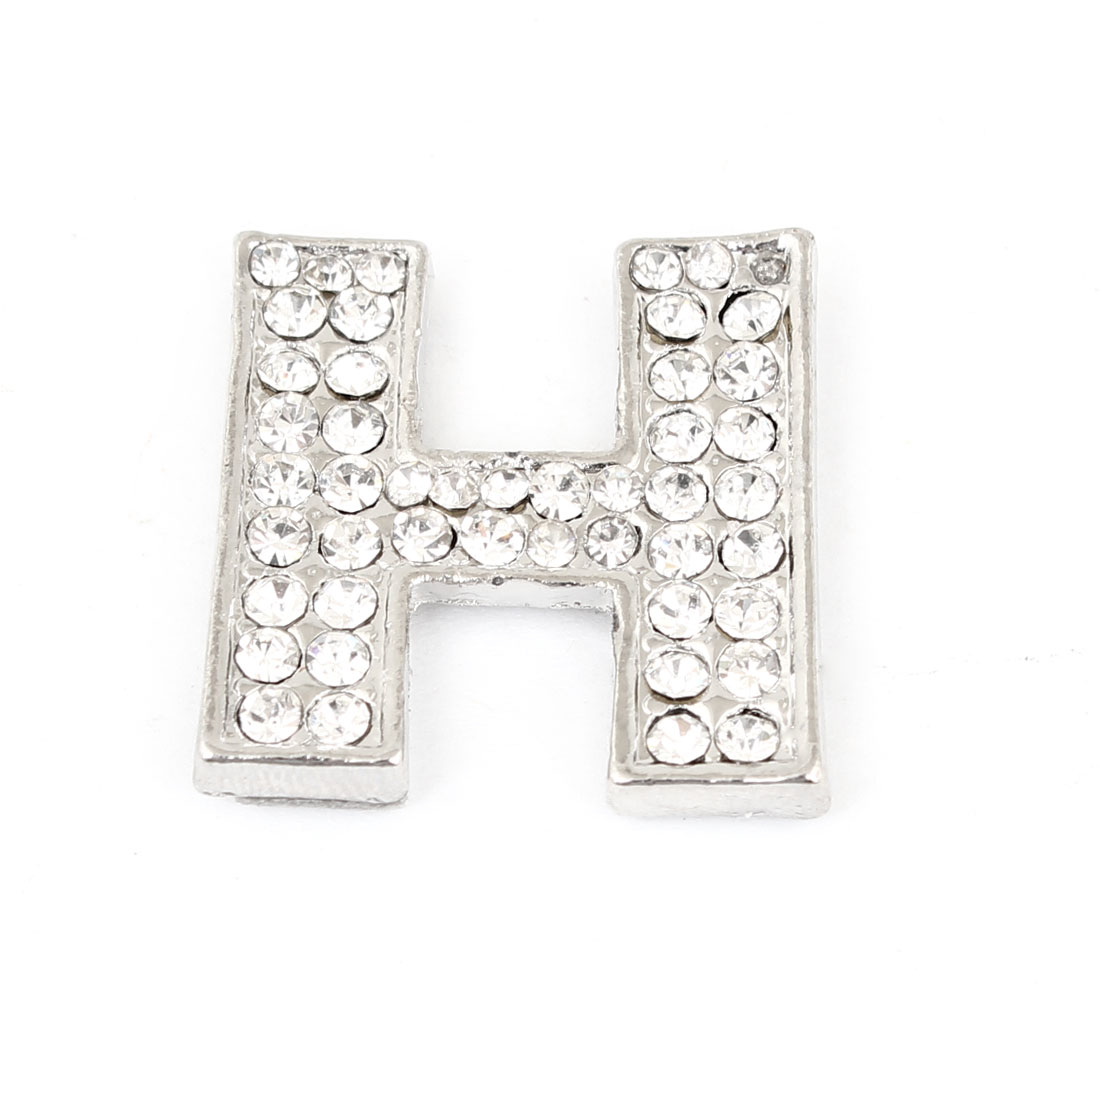 Letter H Shape Rhinestones Metal Decorative Self Adhesive Sticker for Auto Car